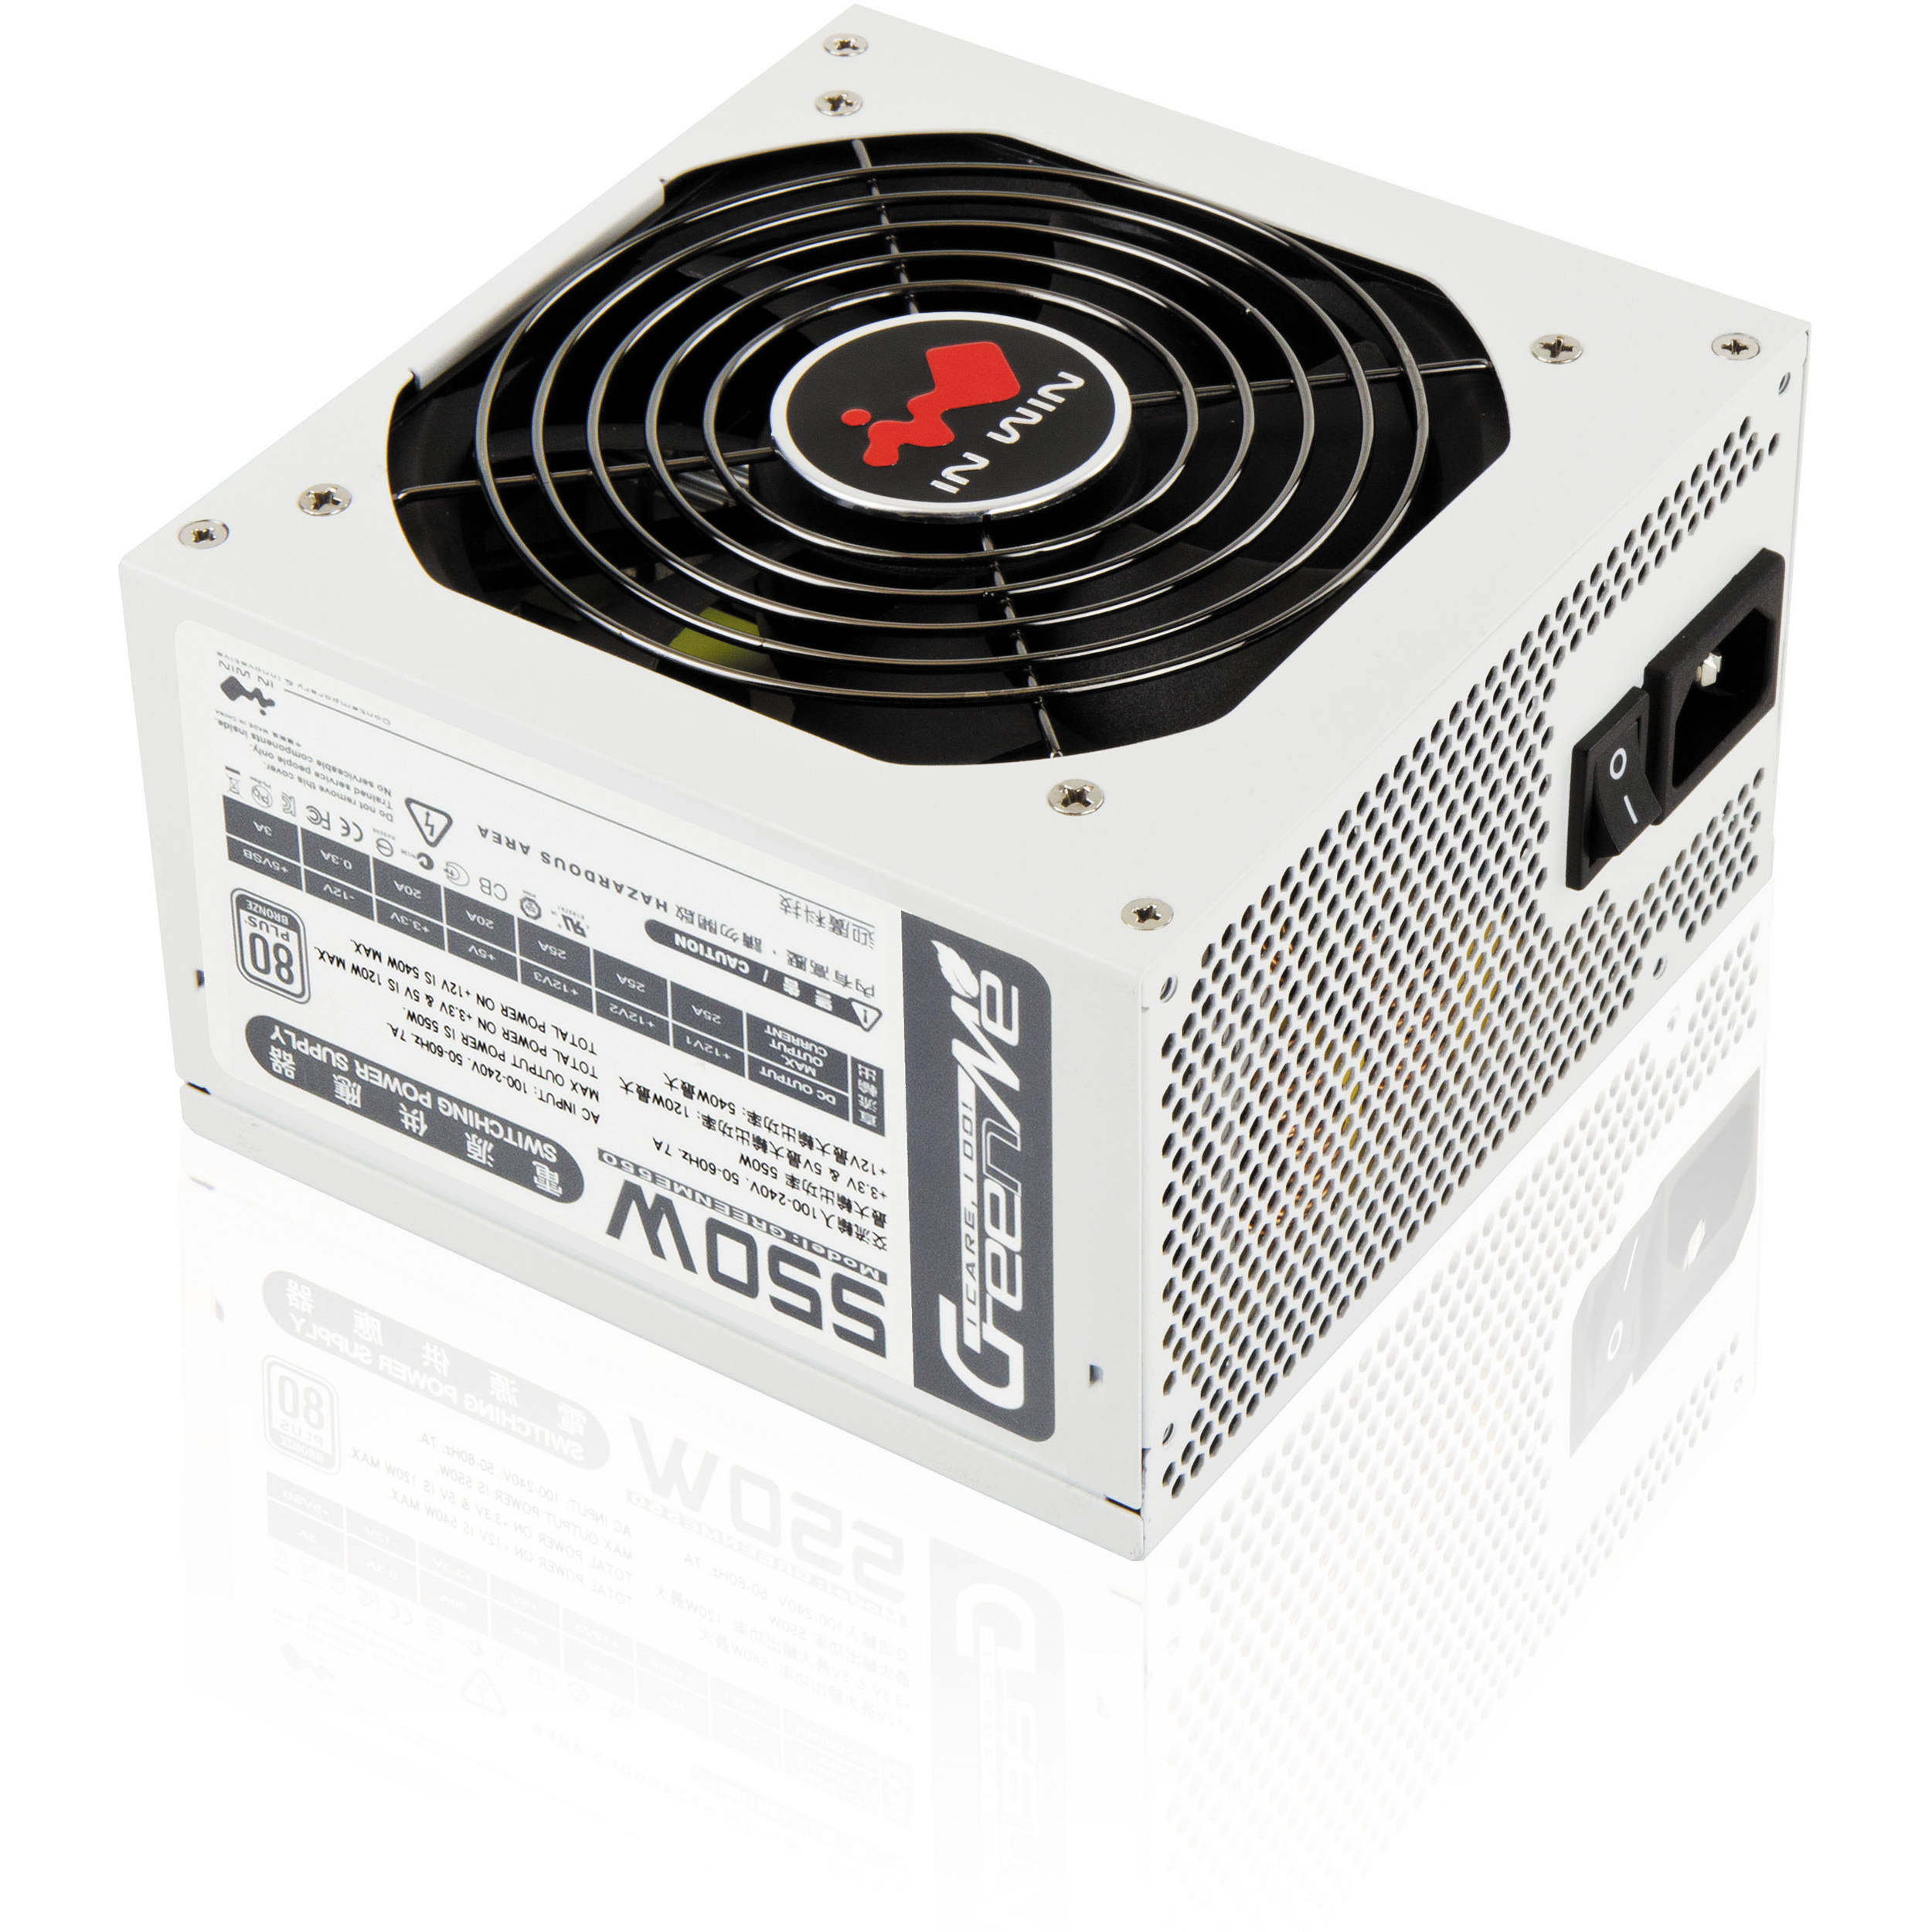 In win greenme atx eps version power supply 2500x2500 Atx 12v power supply